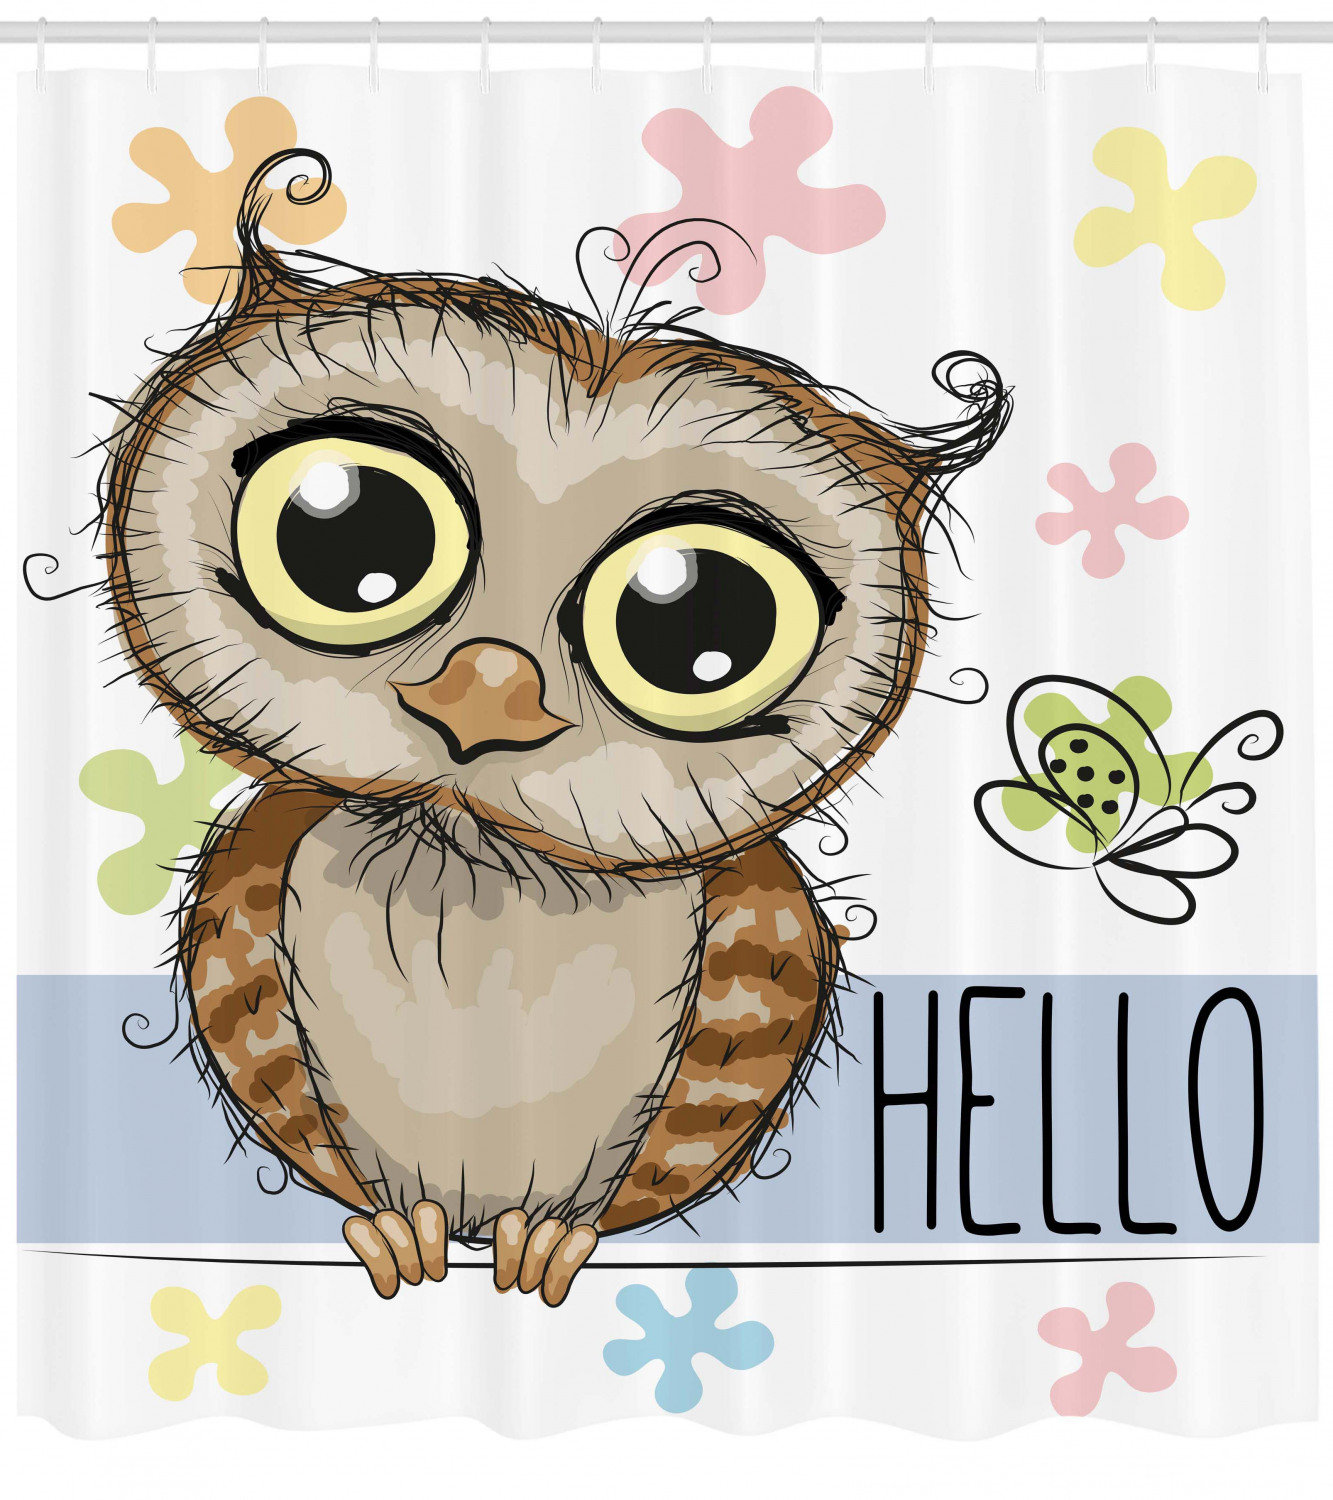 Owls Home Decor Shower Curtain Set Cartoon Owl And A Butterfly On A Floral Background With Hello Message Illustration Bathroom Accessories 69w X 70l Inches By Ambesonne Walmart Com Walmart Com